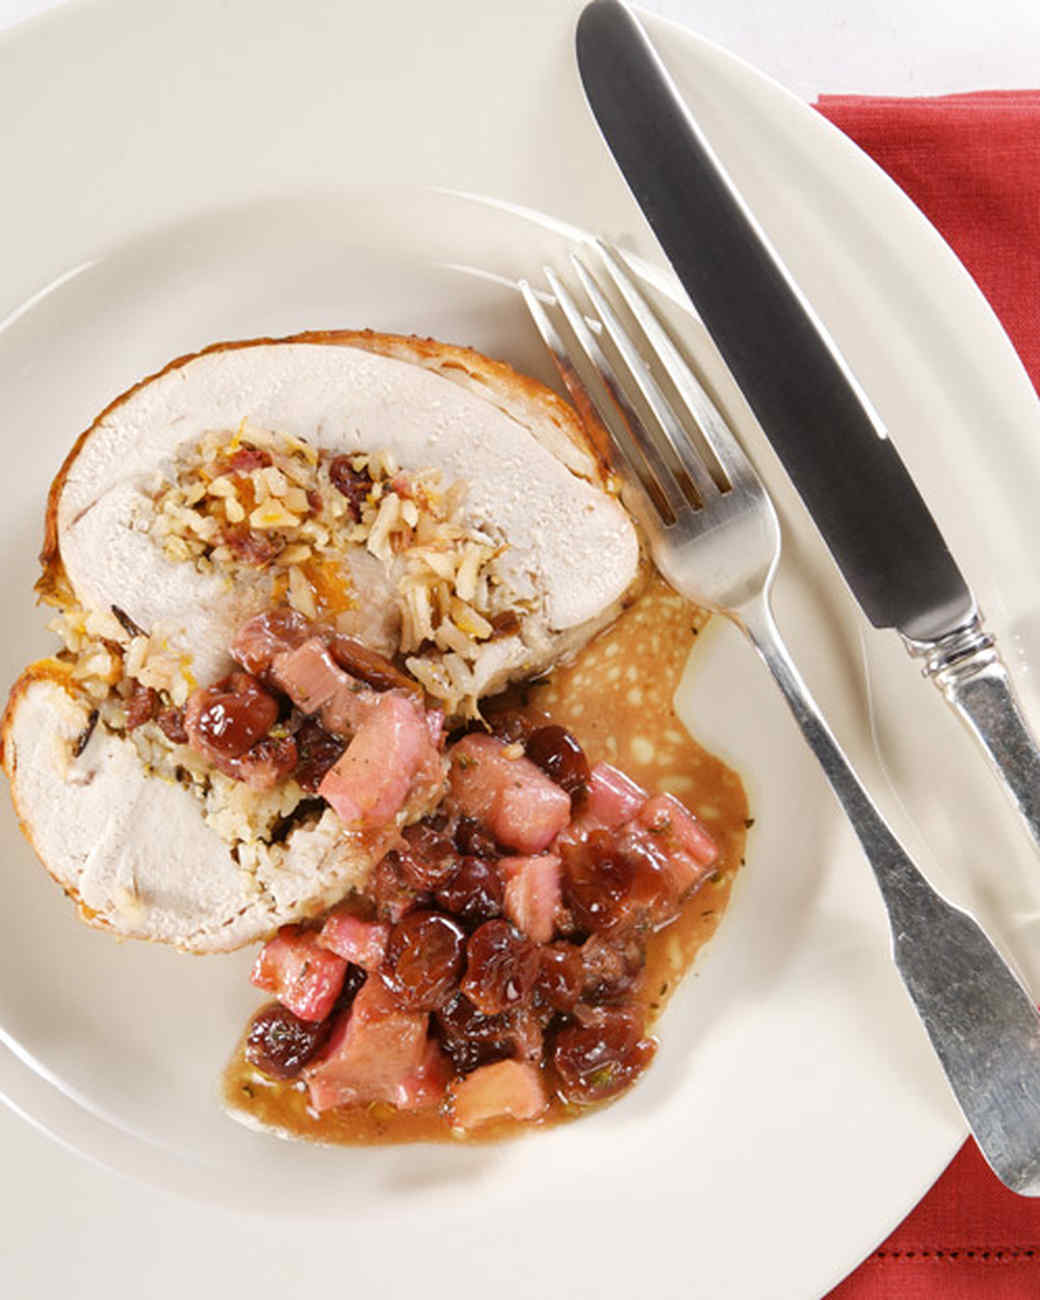 Turkey Roulade with Wild Rice and Rhubarb-Cherry Stuffing